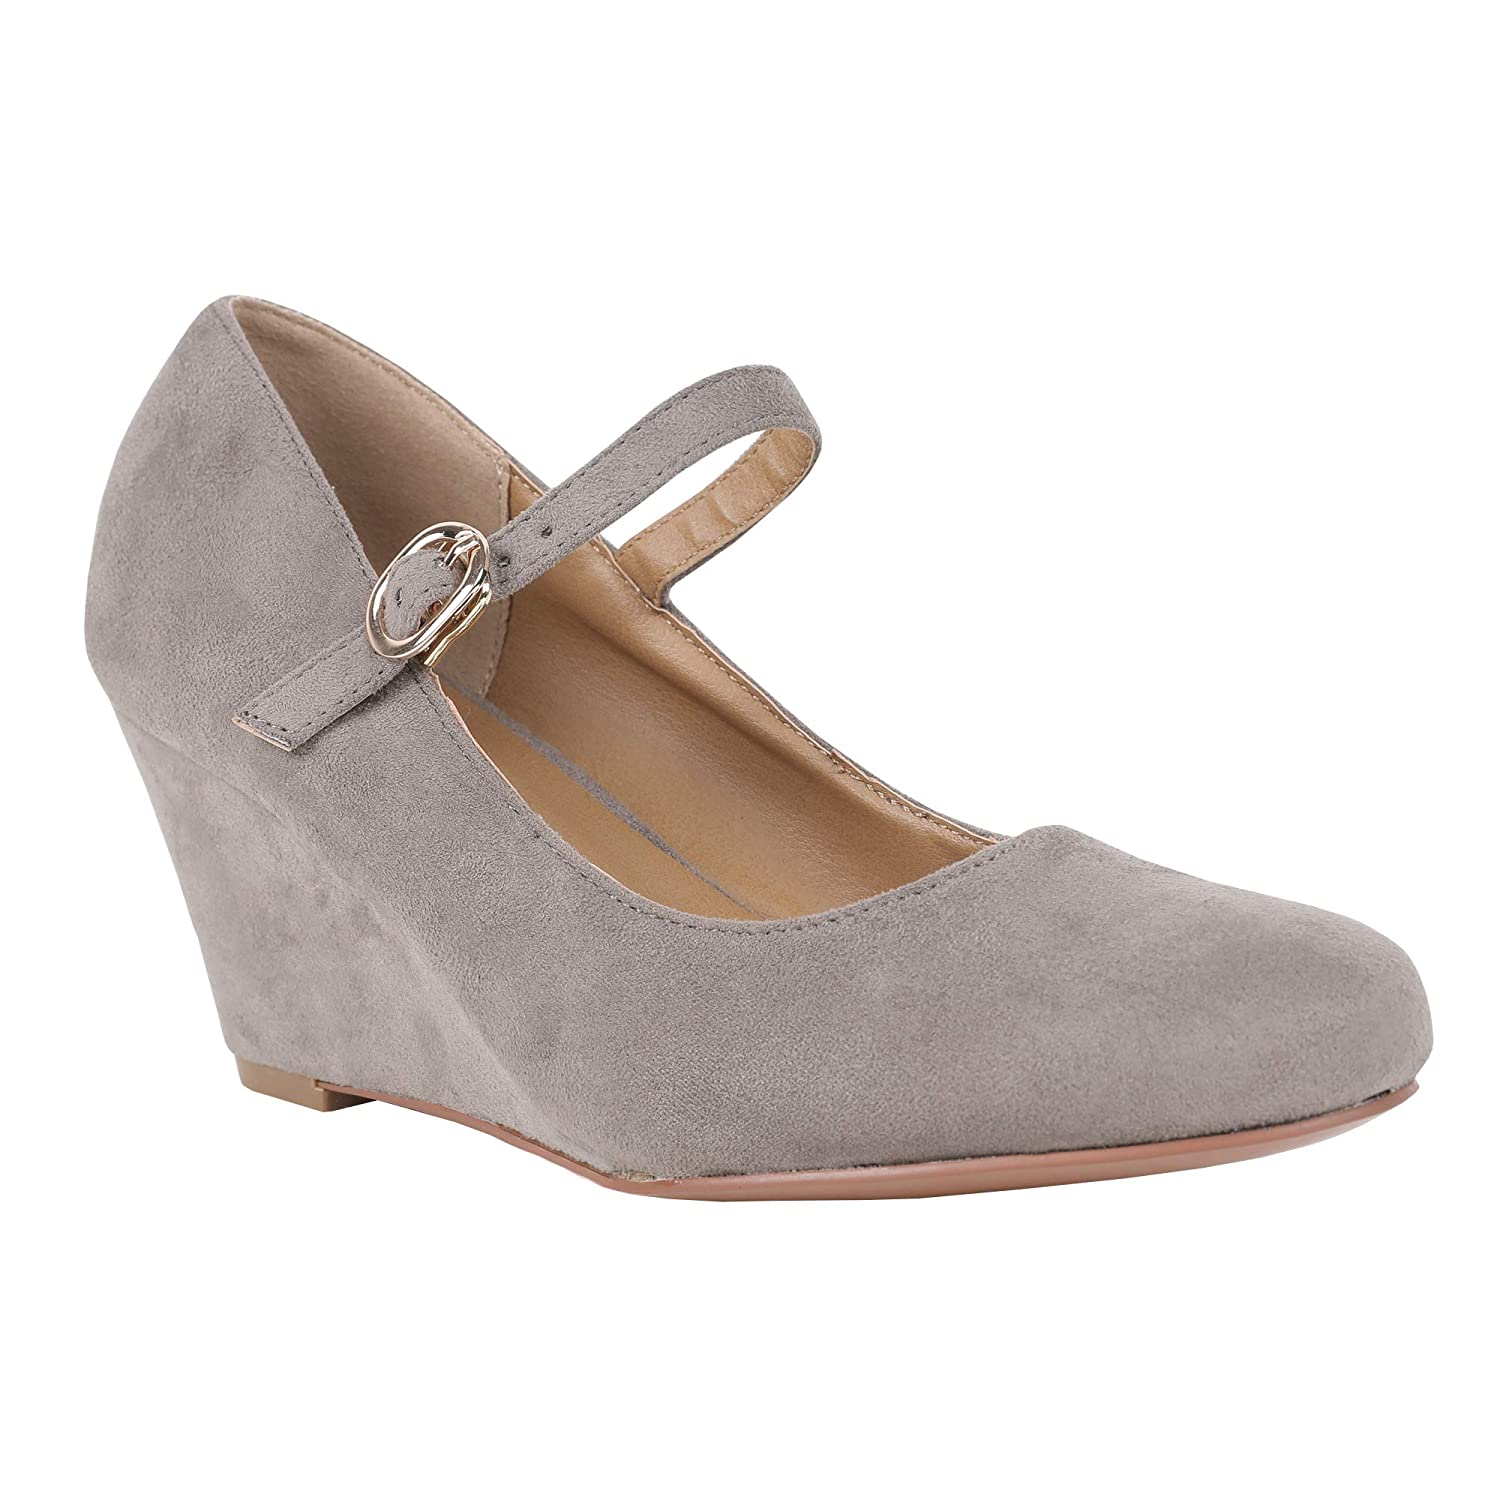 Grey Womens Mary Jane Wedge Pumps Closed Toe Ankle Strap Mid Heel Office Work shoes